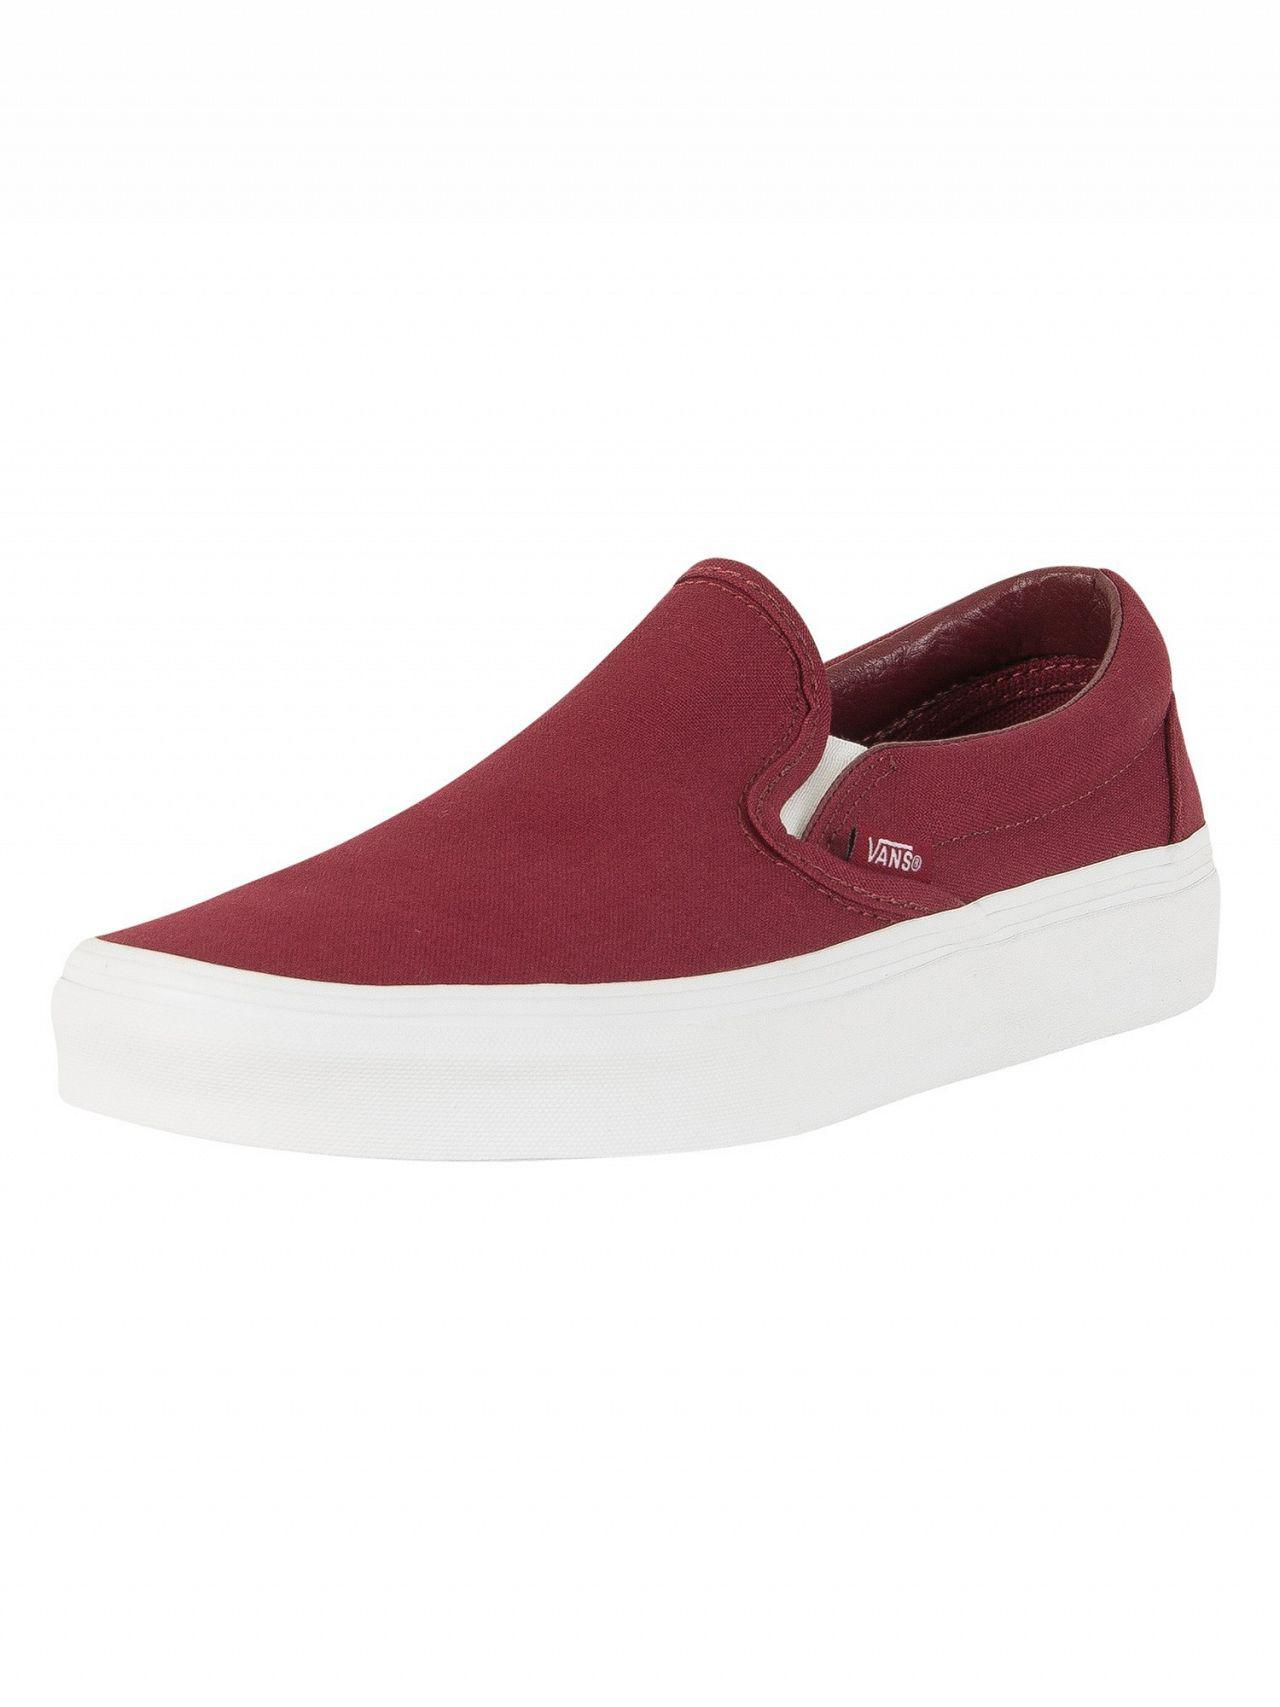 UA CLASSIC SLIP-ON - LEATHER PERF - FOOTWEAR - Low-tops & sneakers Vans With Paypal Low Price Latest Cheap Price Extremely Footlocker Pictures Cheap Online aTnXF2f